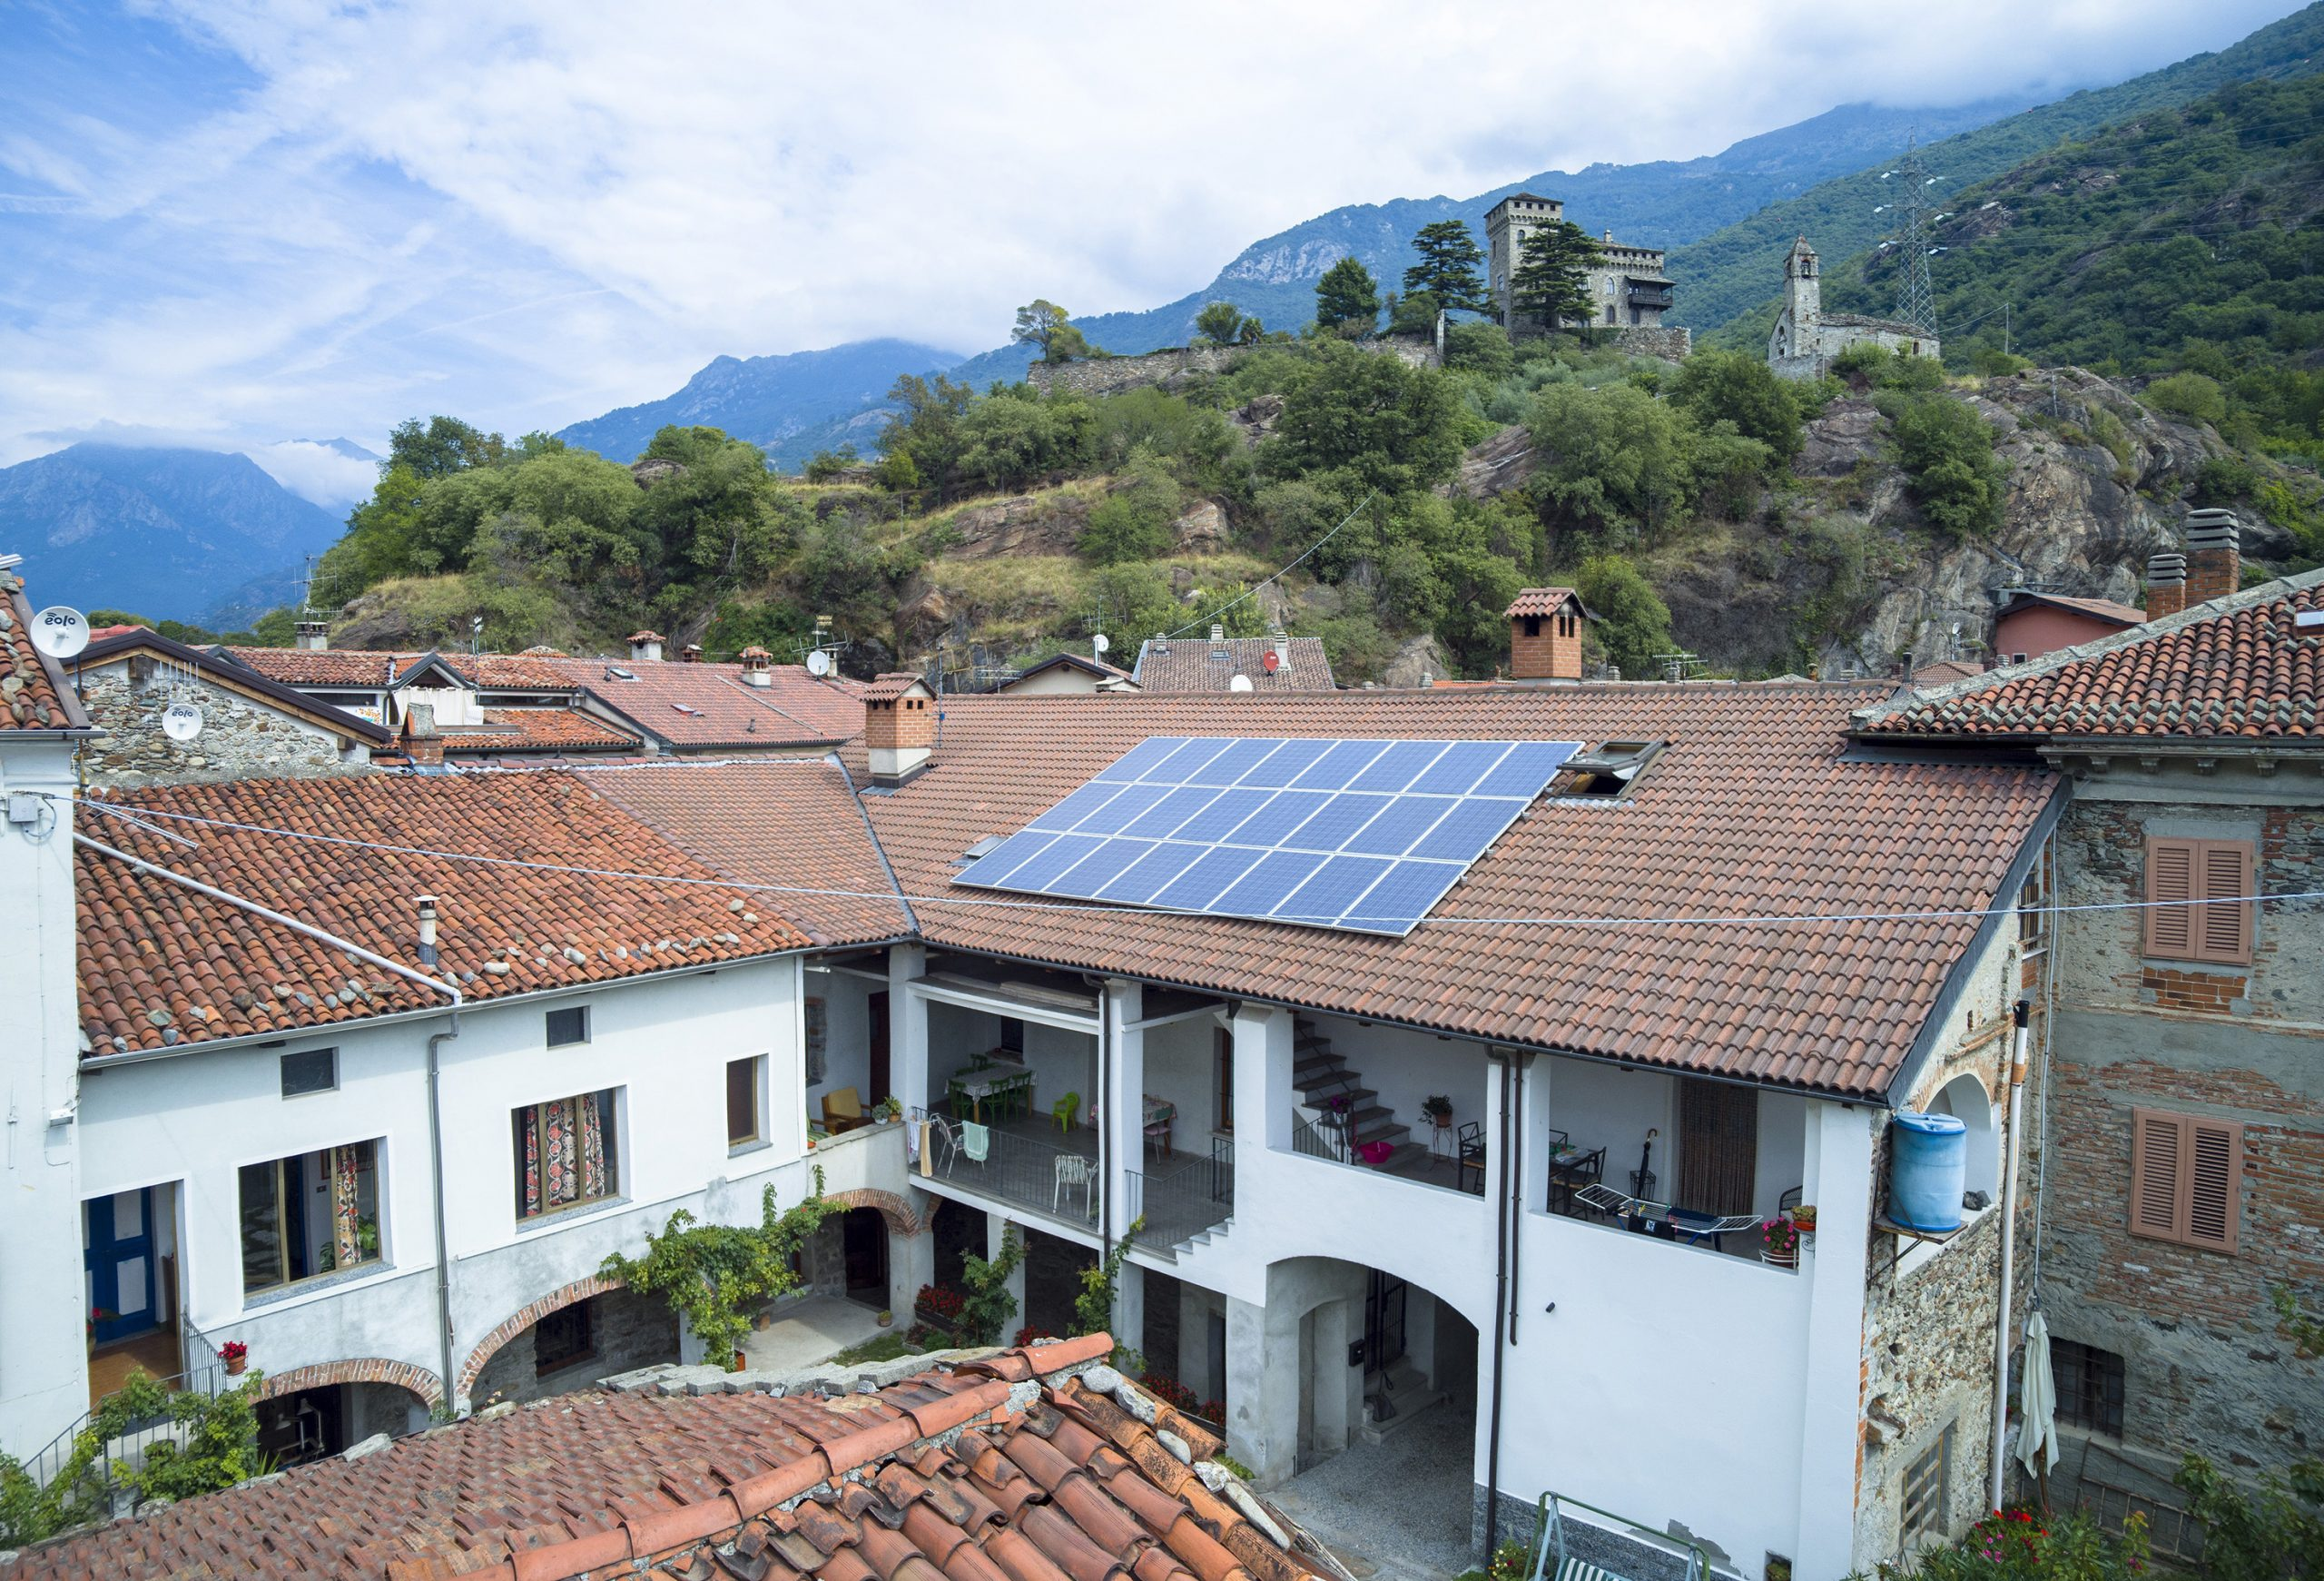 Photovoltaic system for clean and renewable energy Solar panels